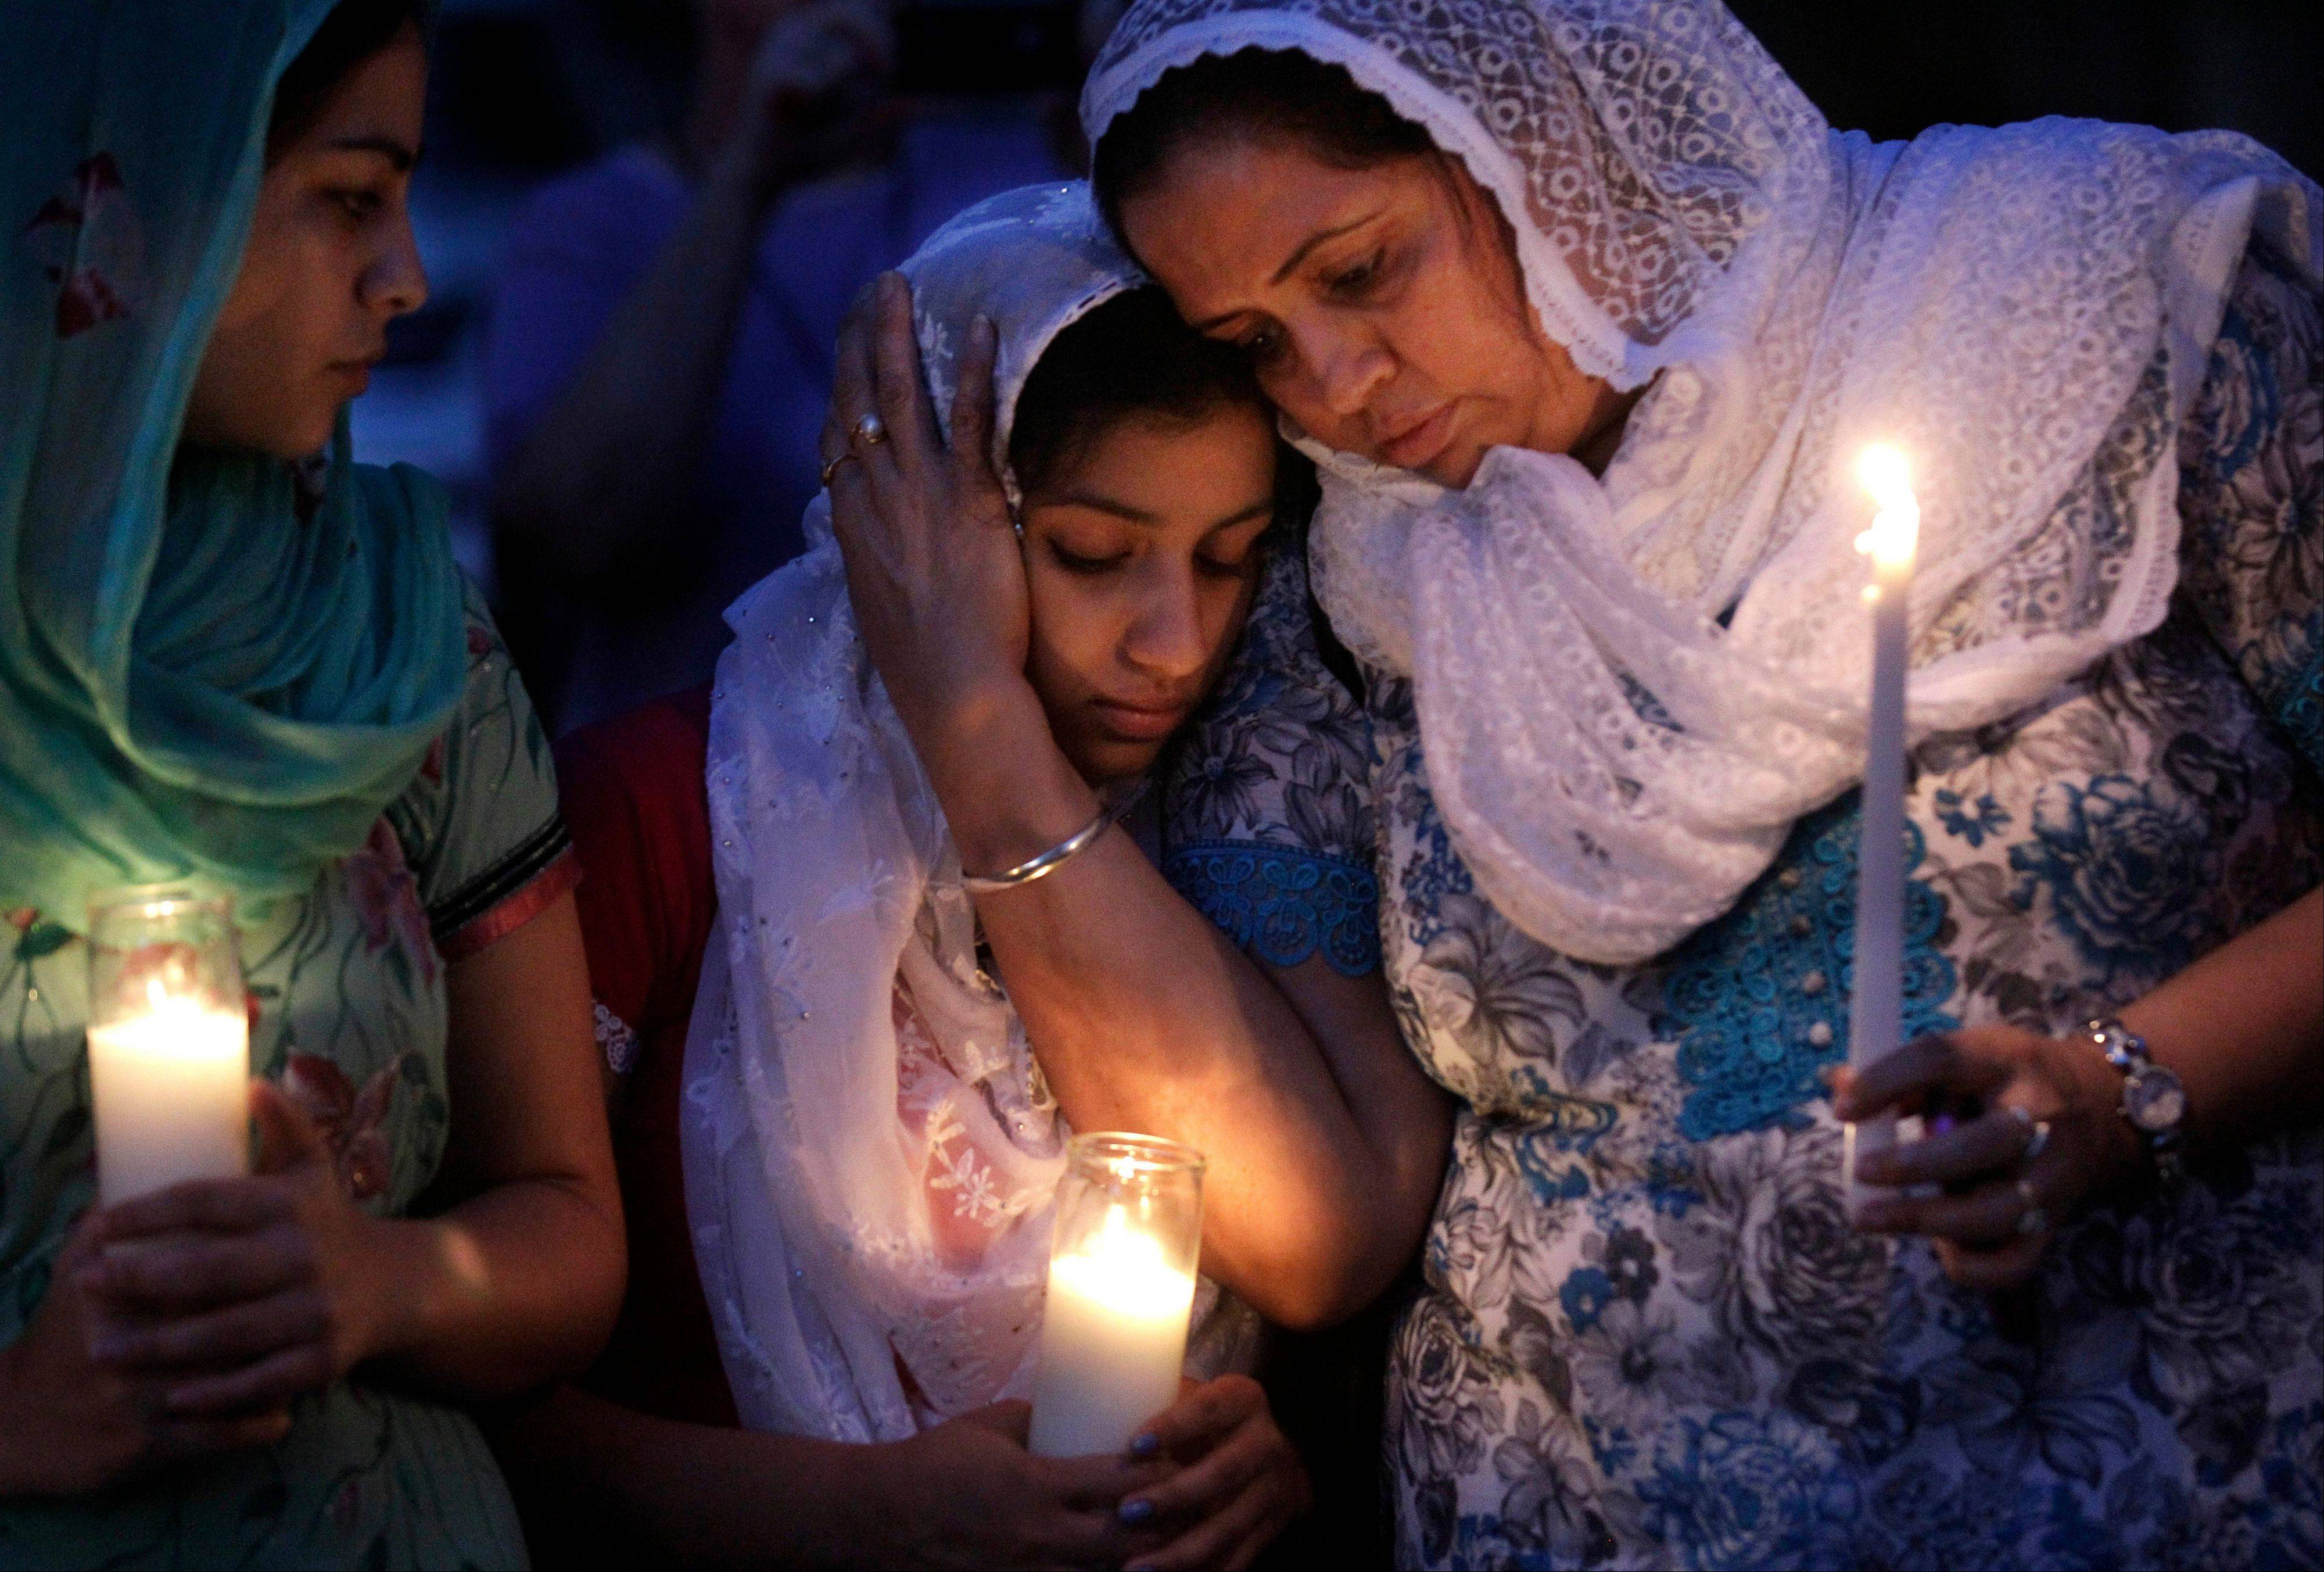 Worshippers from the Sikh community gather for a candle light vigil after prayer services last August in Brookfield, Wis. Twelve months ago, a white supremacist walked into a temple and opened fire, killing six people.